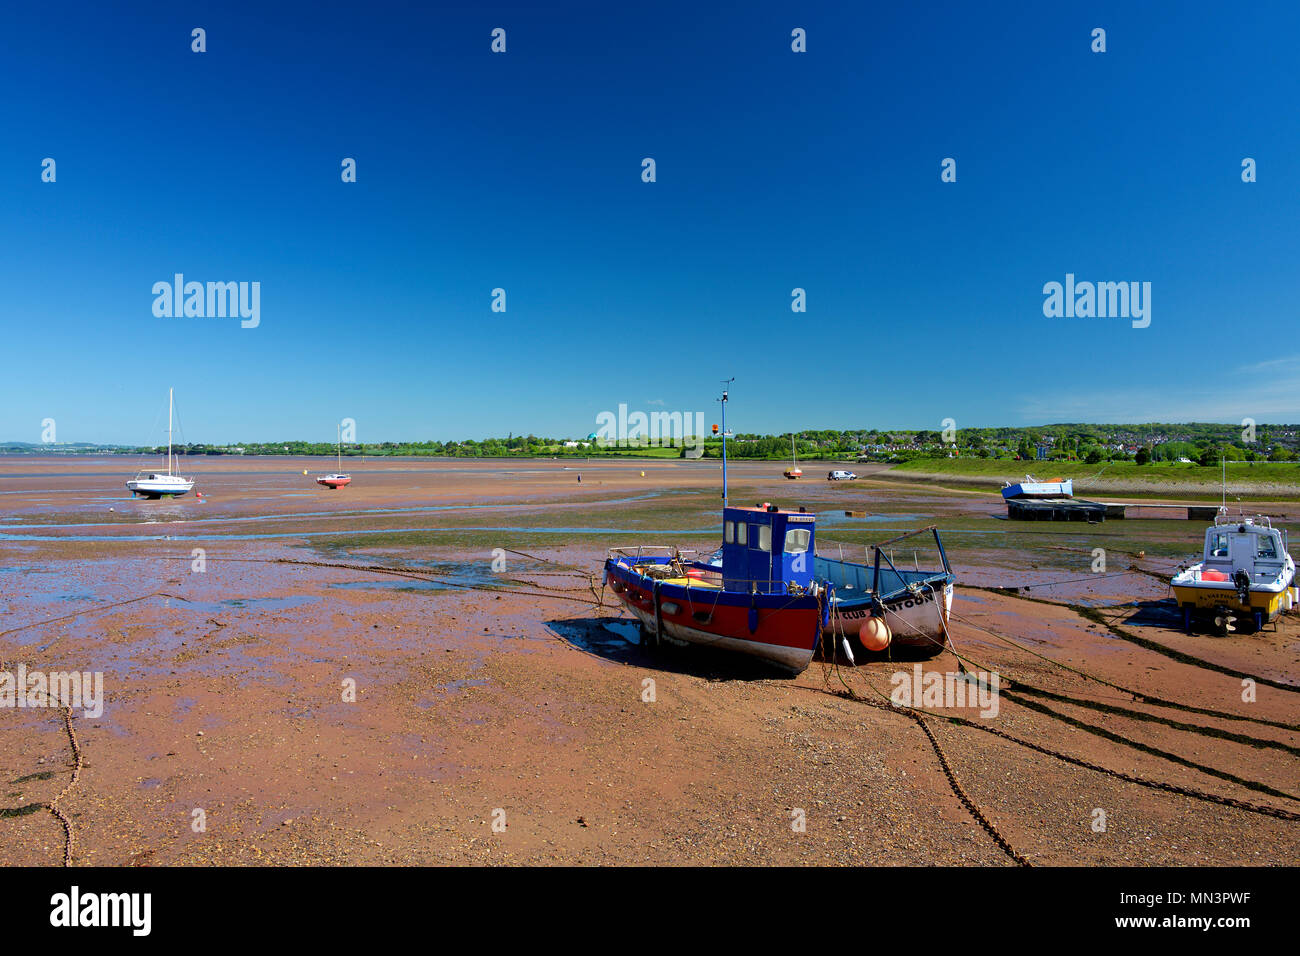 The Exe Estuary from Exmouth, Devon, UK - Stock Image